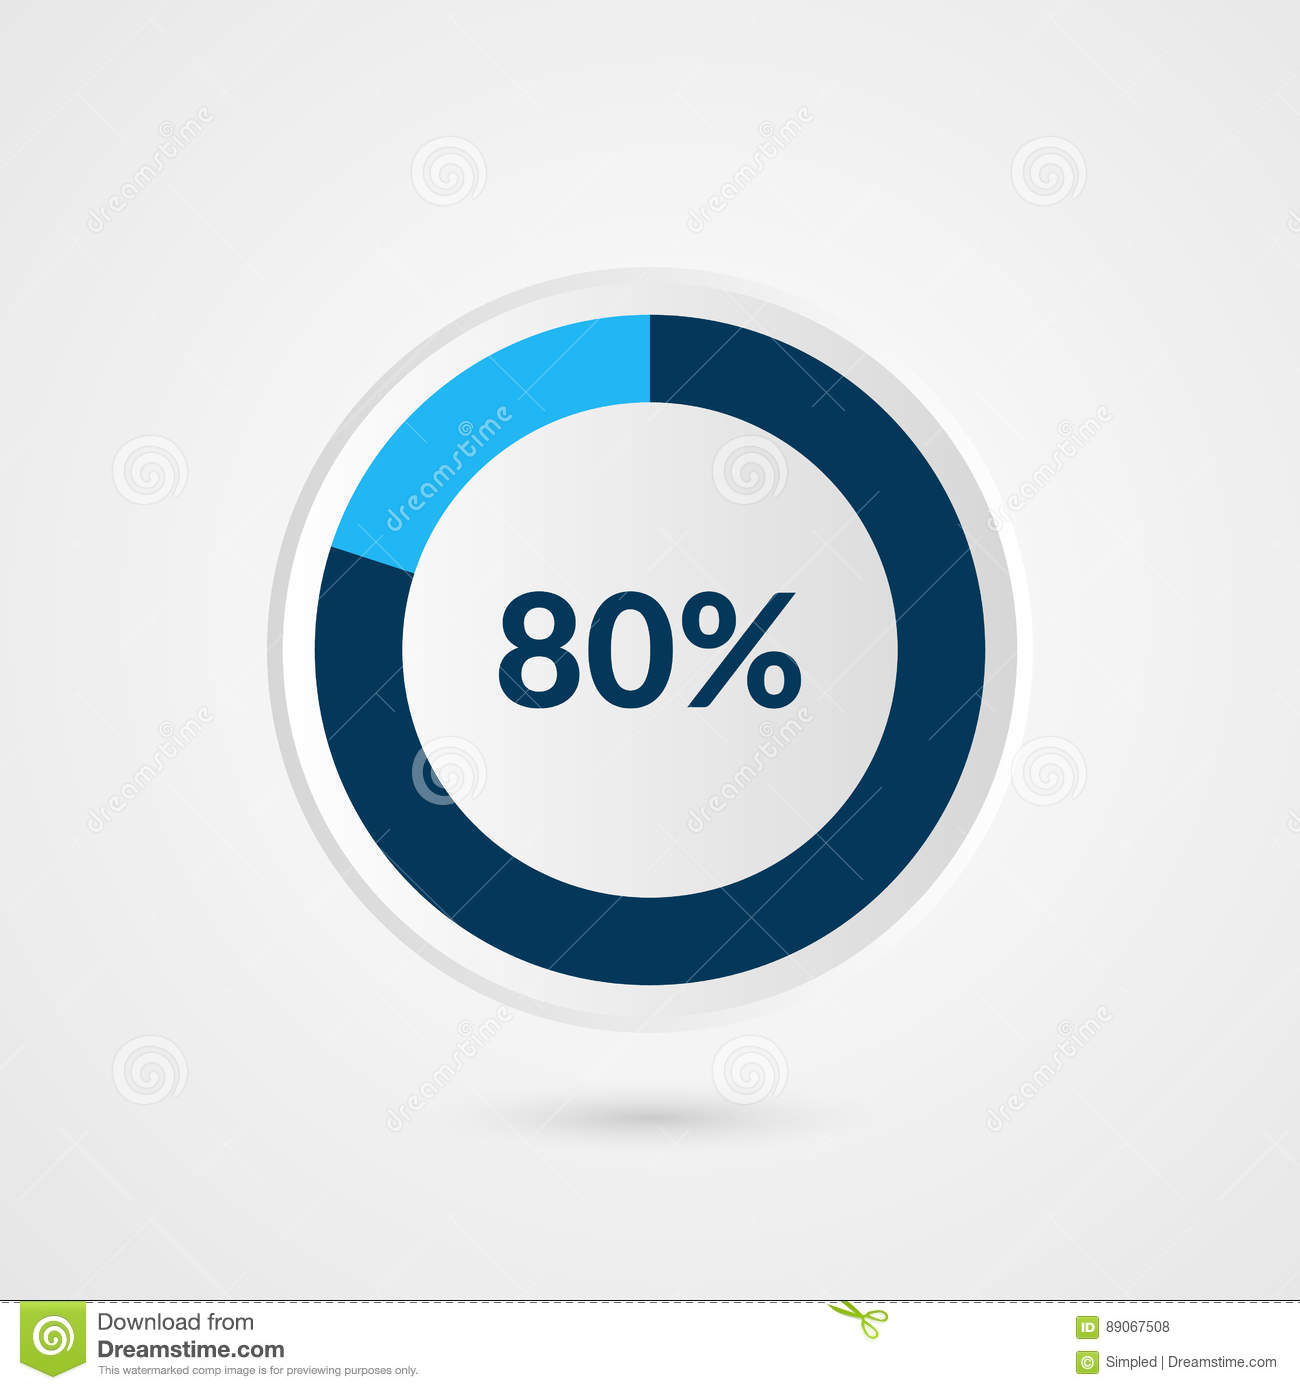 80 Percent Blue Grey And White Pie Chart Percentage Vector